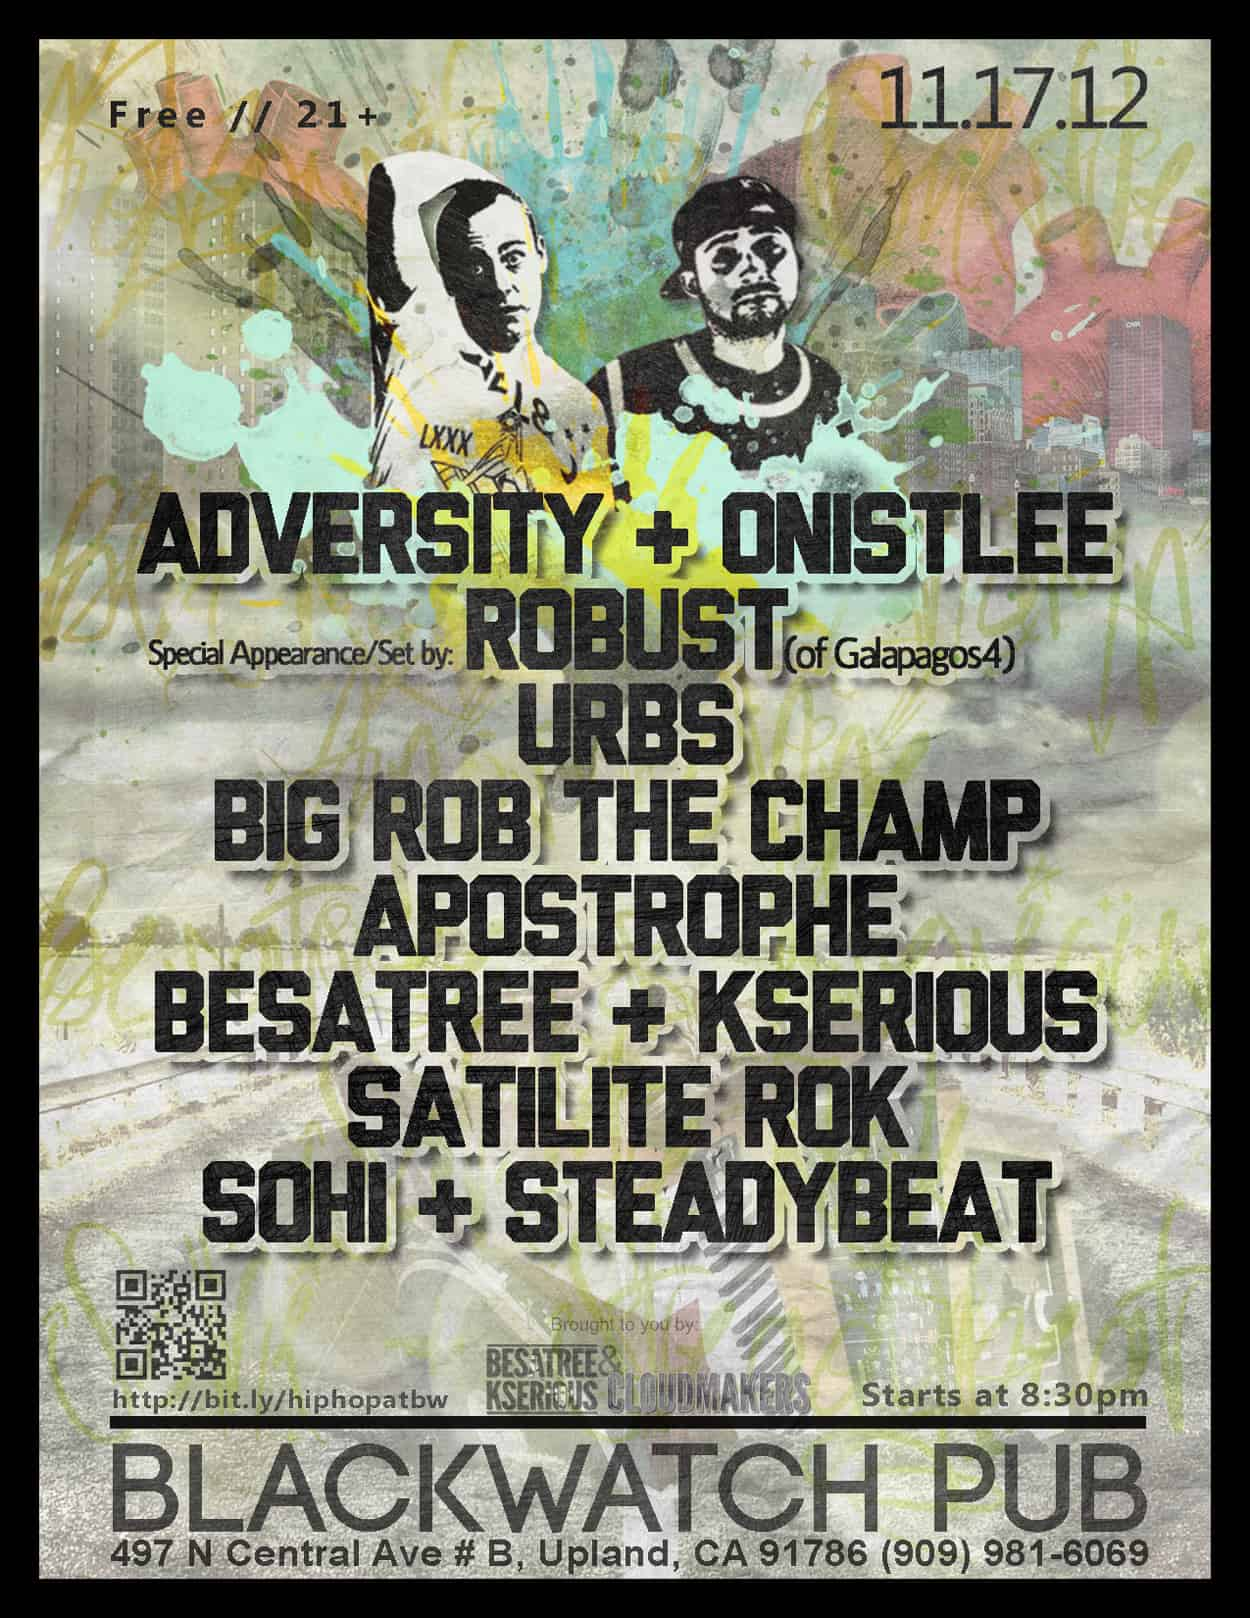 adversity and onistlee - flyer design